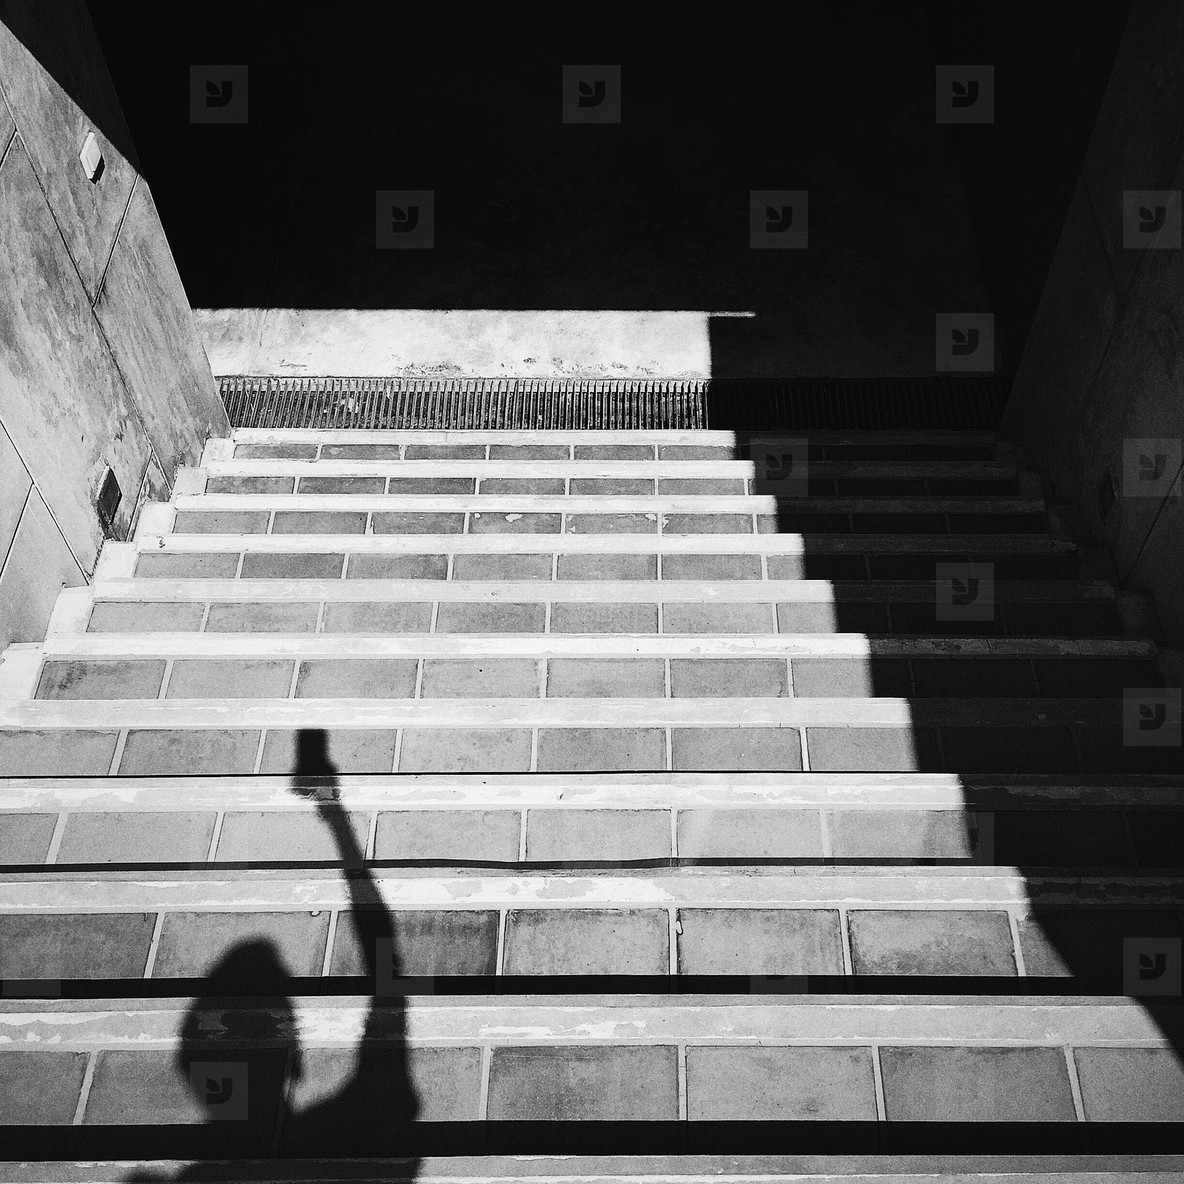 Shadow on stairs